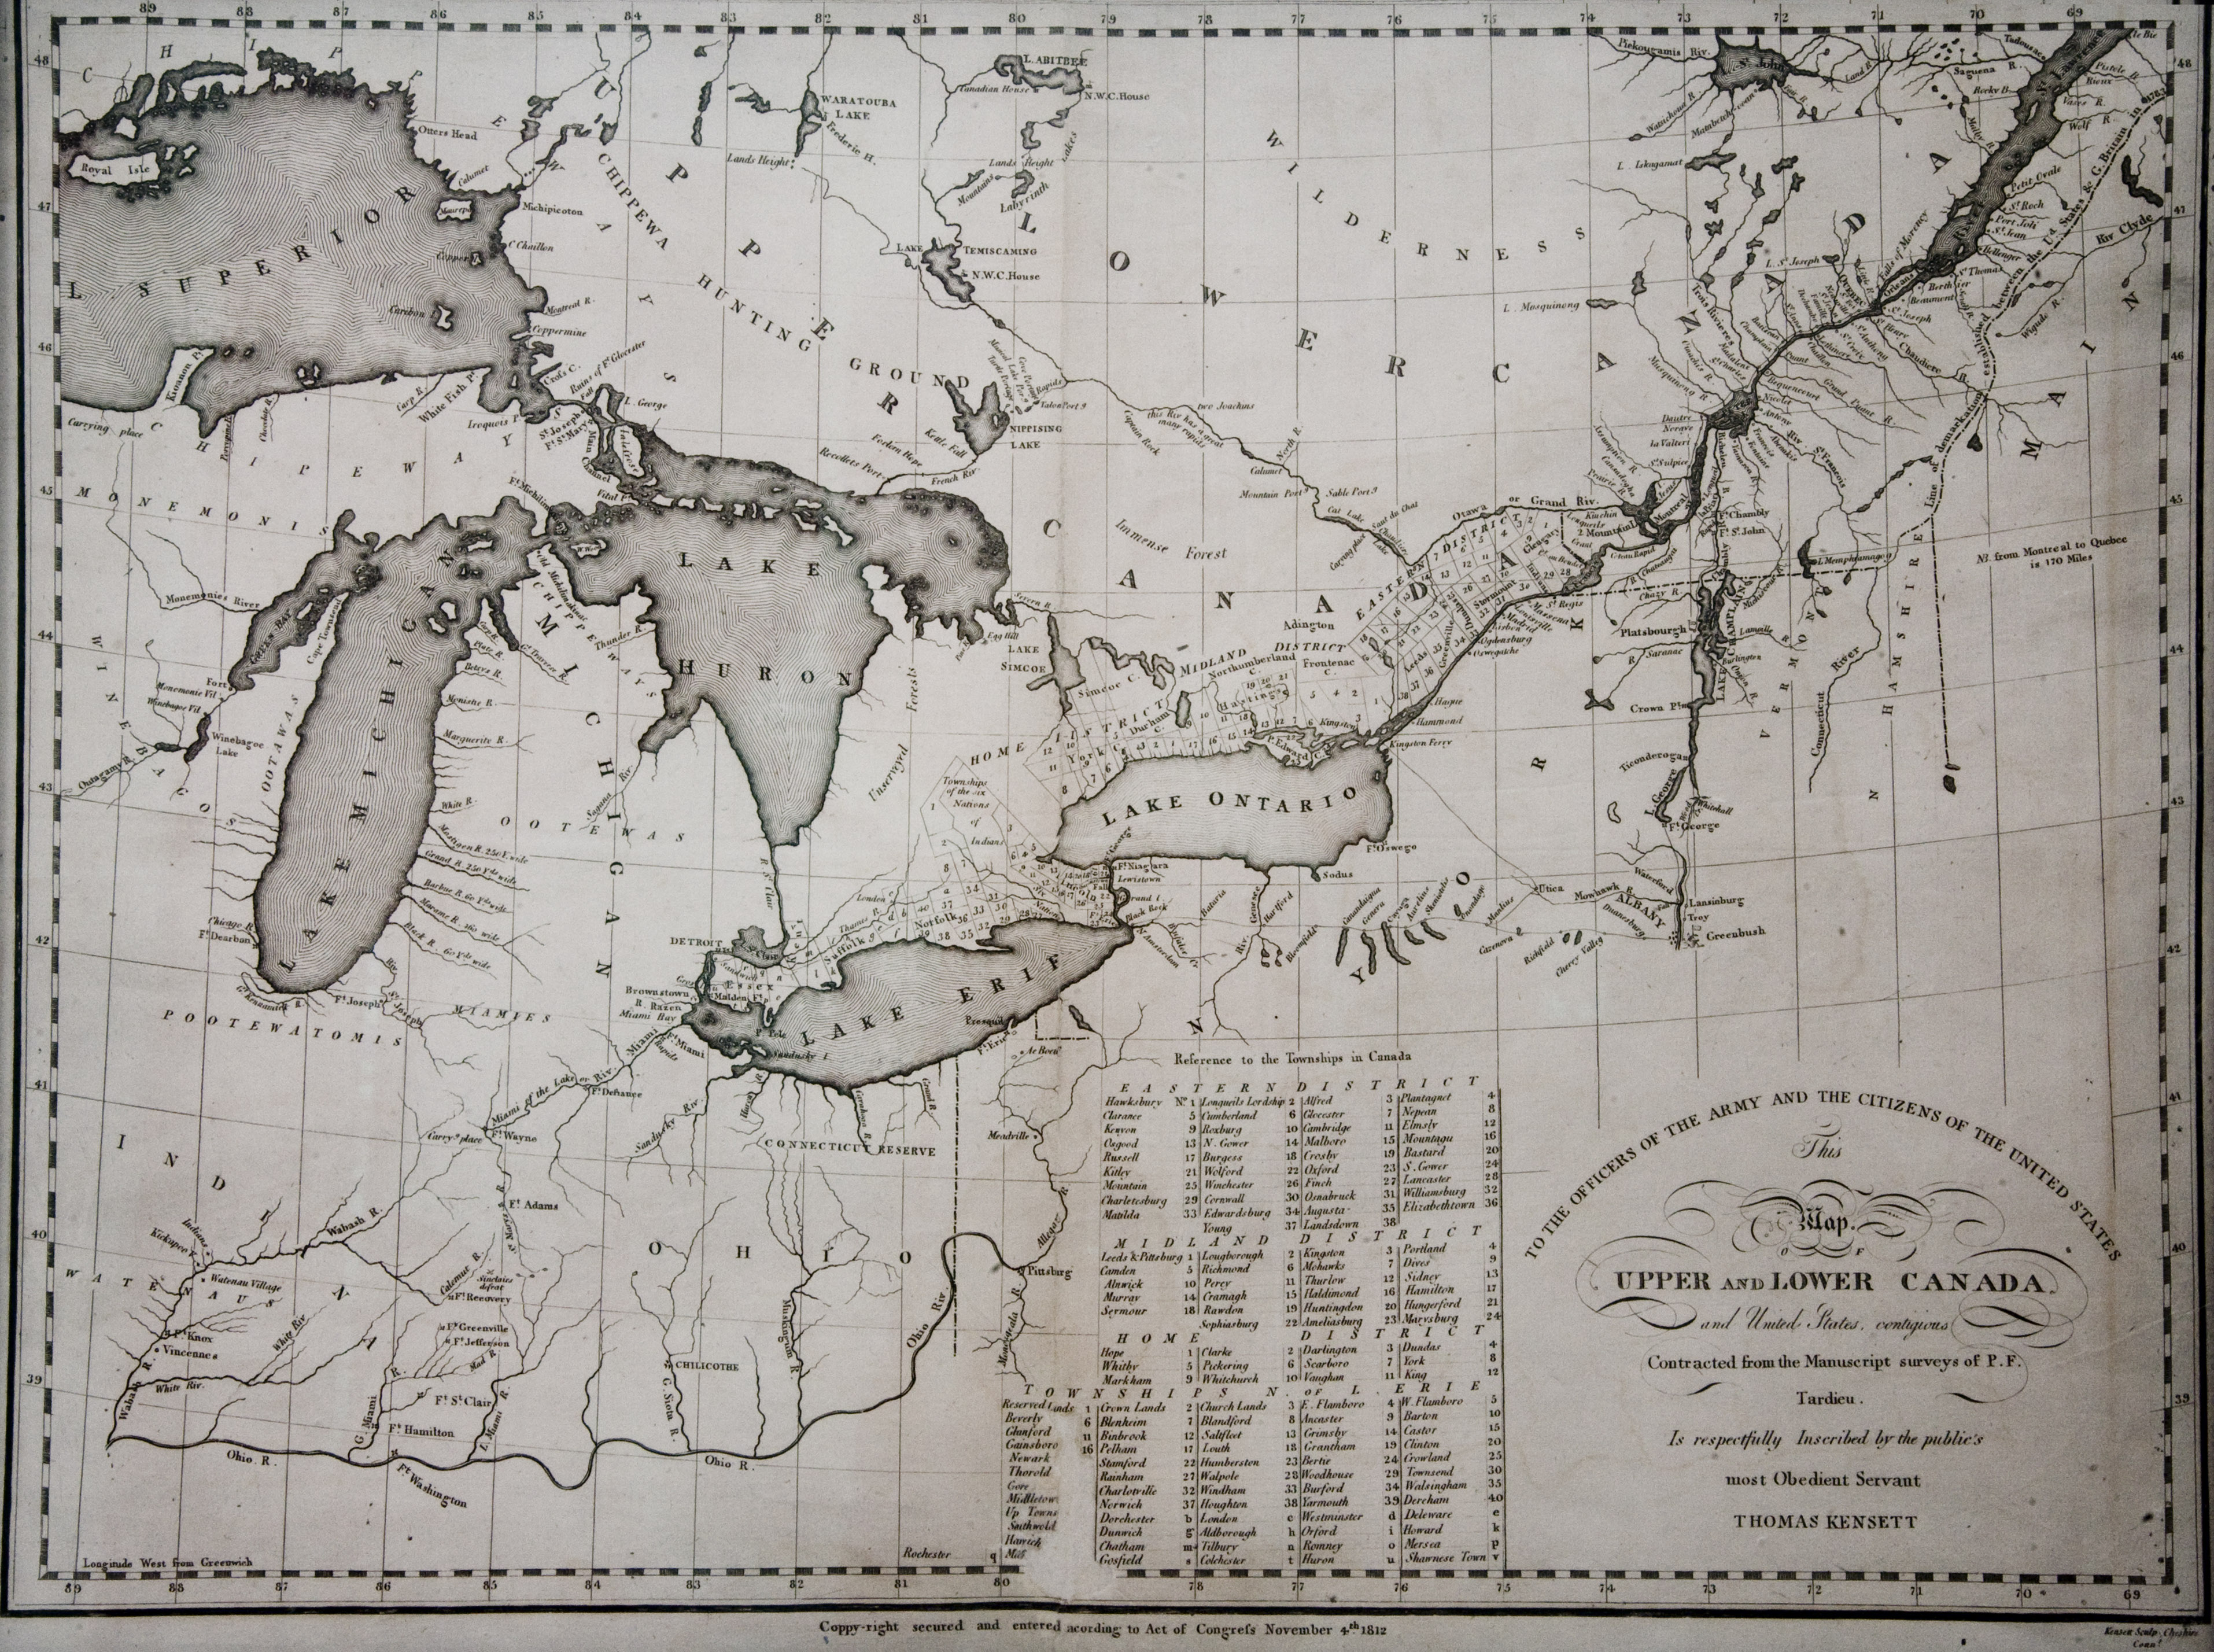 The great lakes including the Niagara Frontier just prior to the